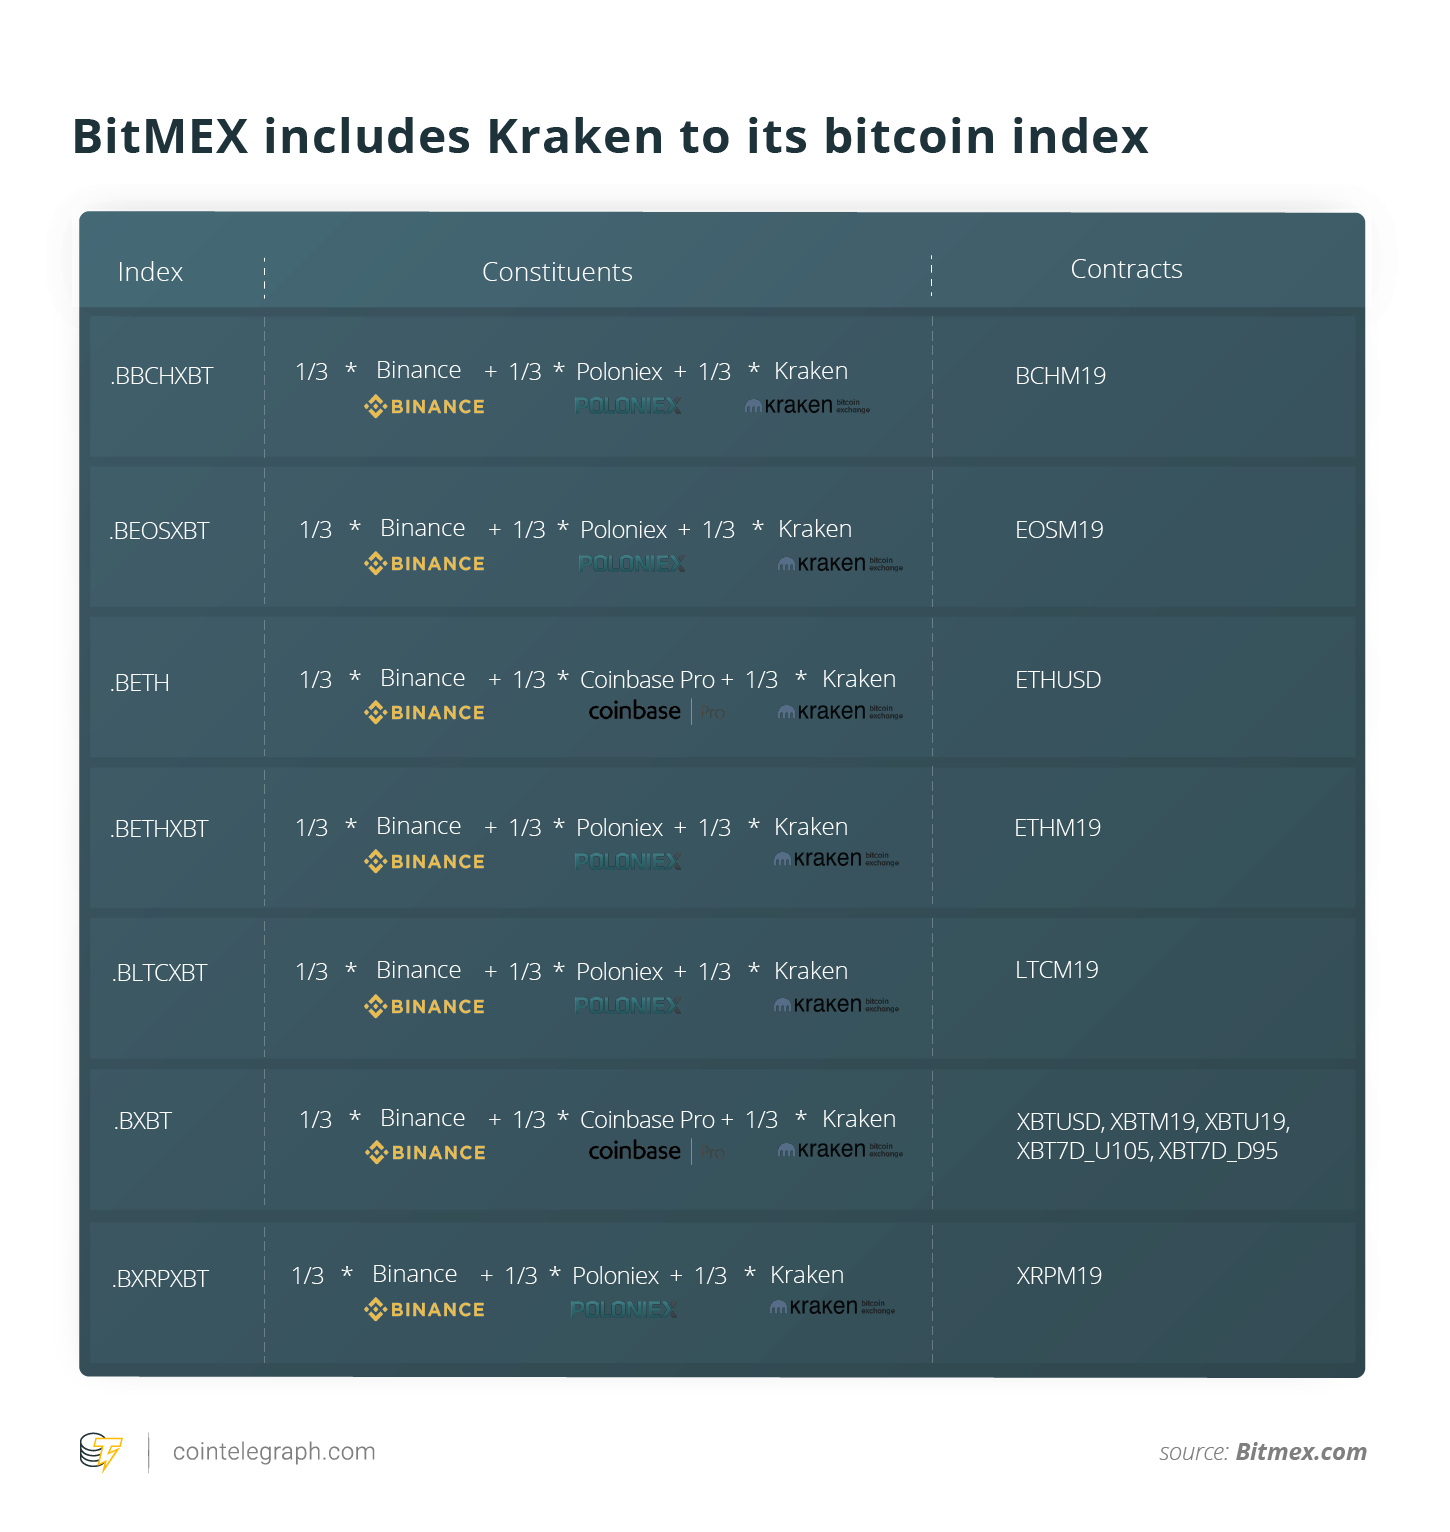 BitMEX includes Kraken to its bitcoin index